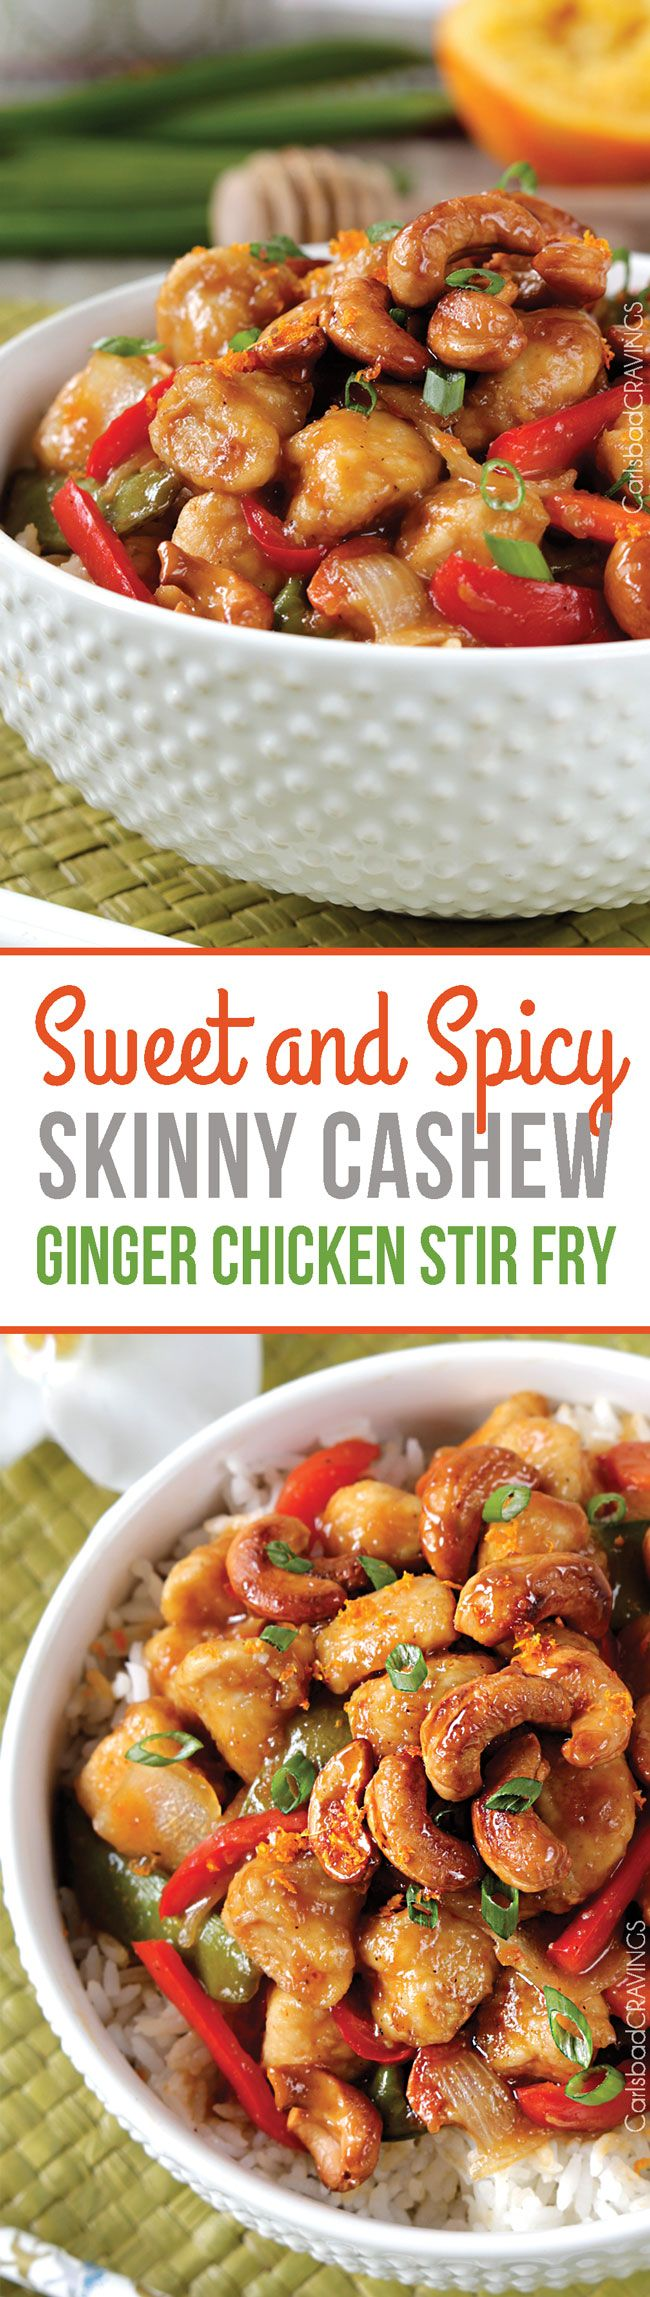 Skinny Sweet and Spicy Cashew Ginger Chicken Stir Fry - in your mouth in less than 30 minutes with CARAMELIZED cashews and the most incredible sauce! #cashewchicken #stirfry #Chineserecipes